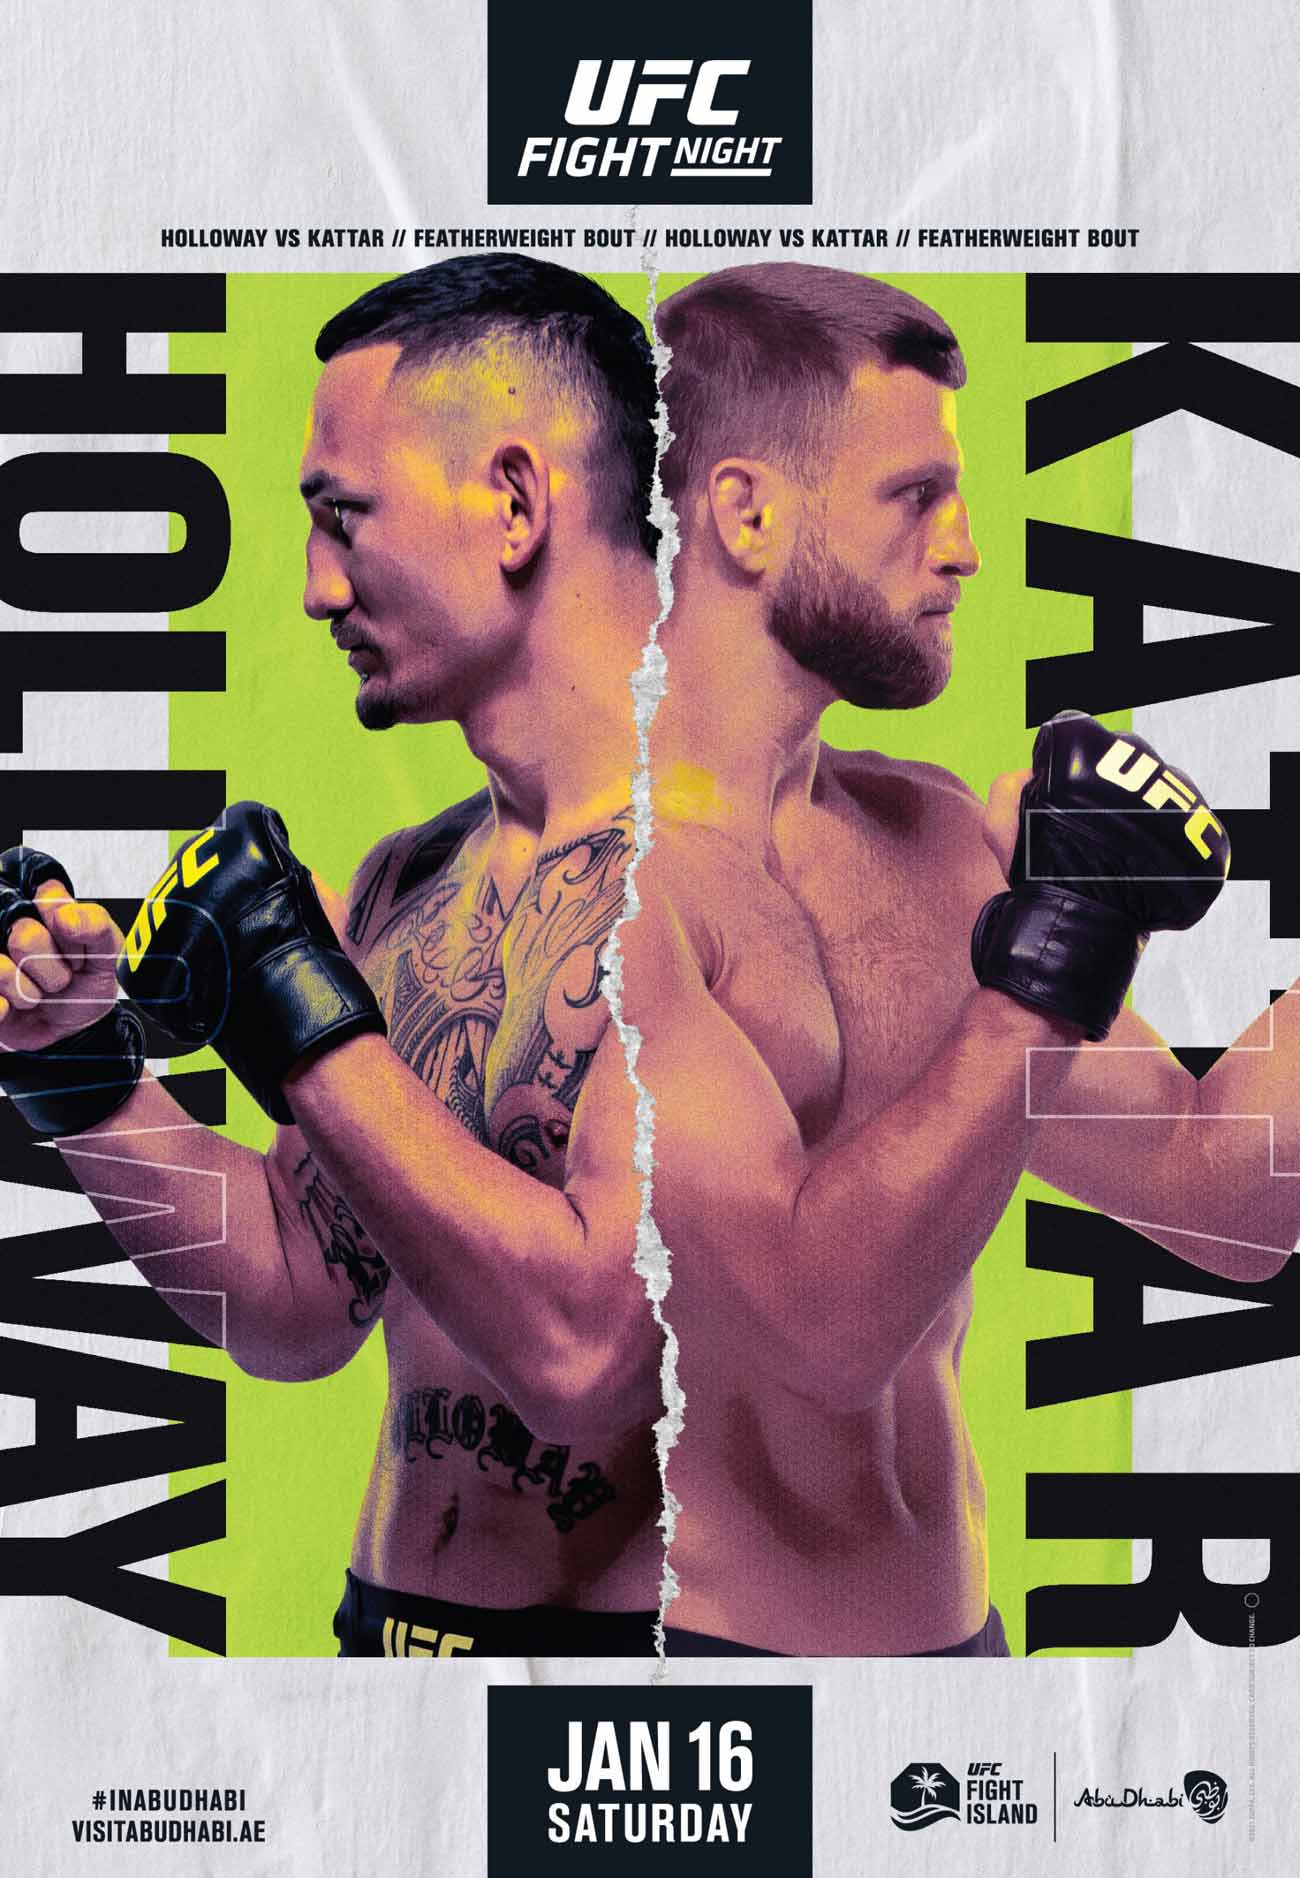 Poster of UFC on ABC 1: Holloway vs Kattar